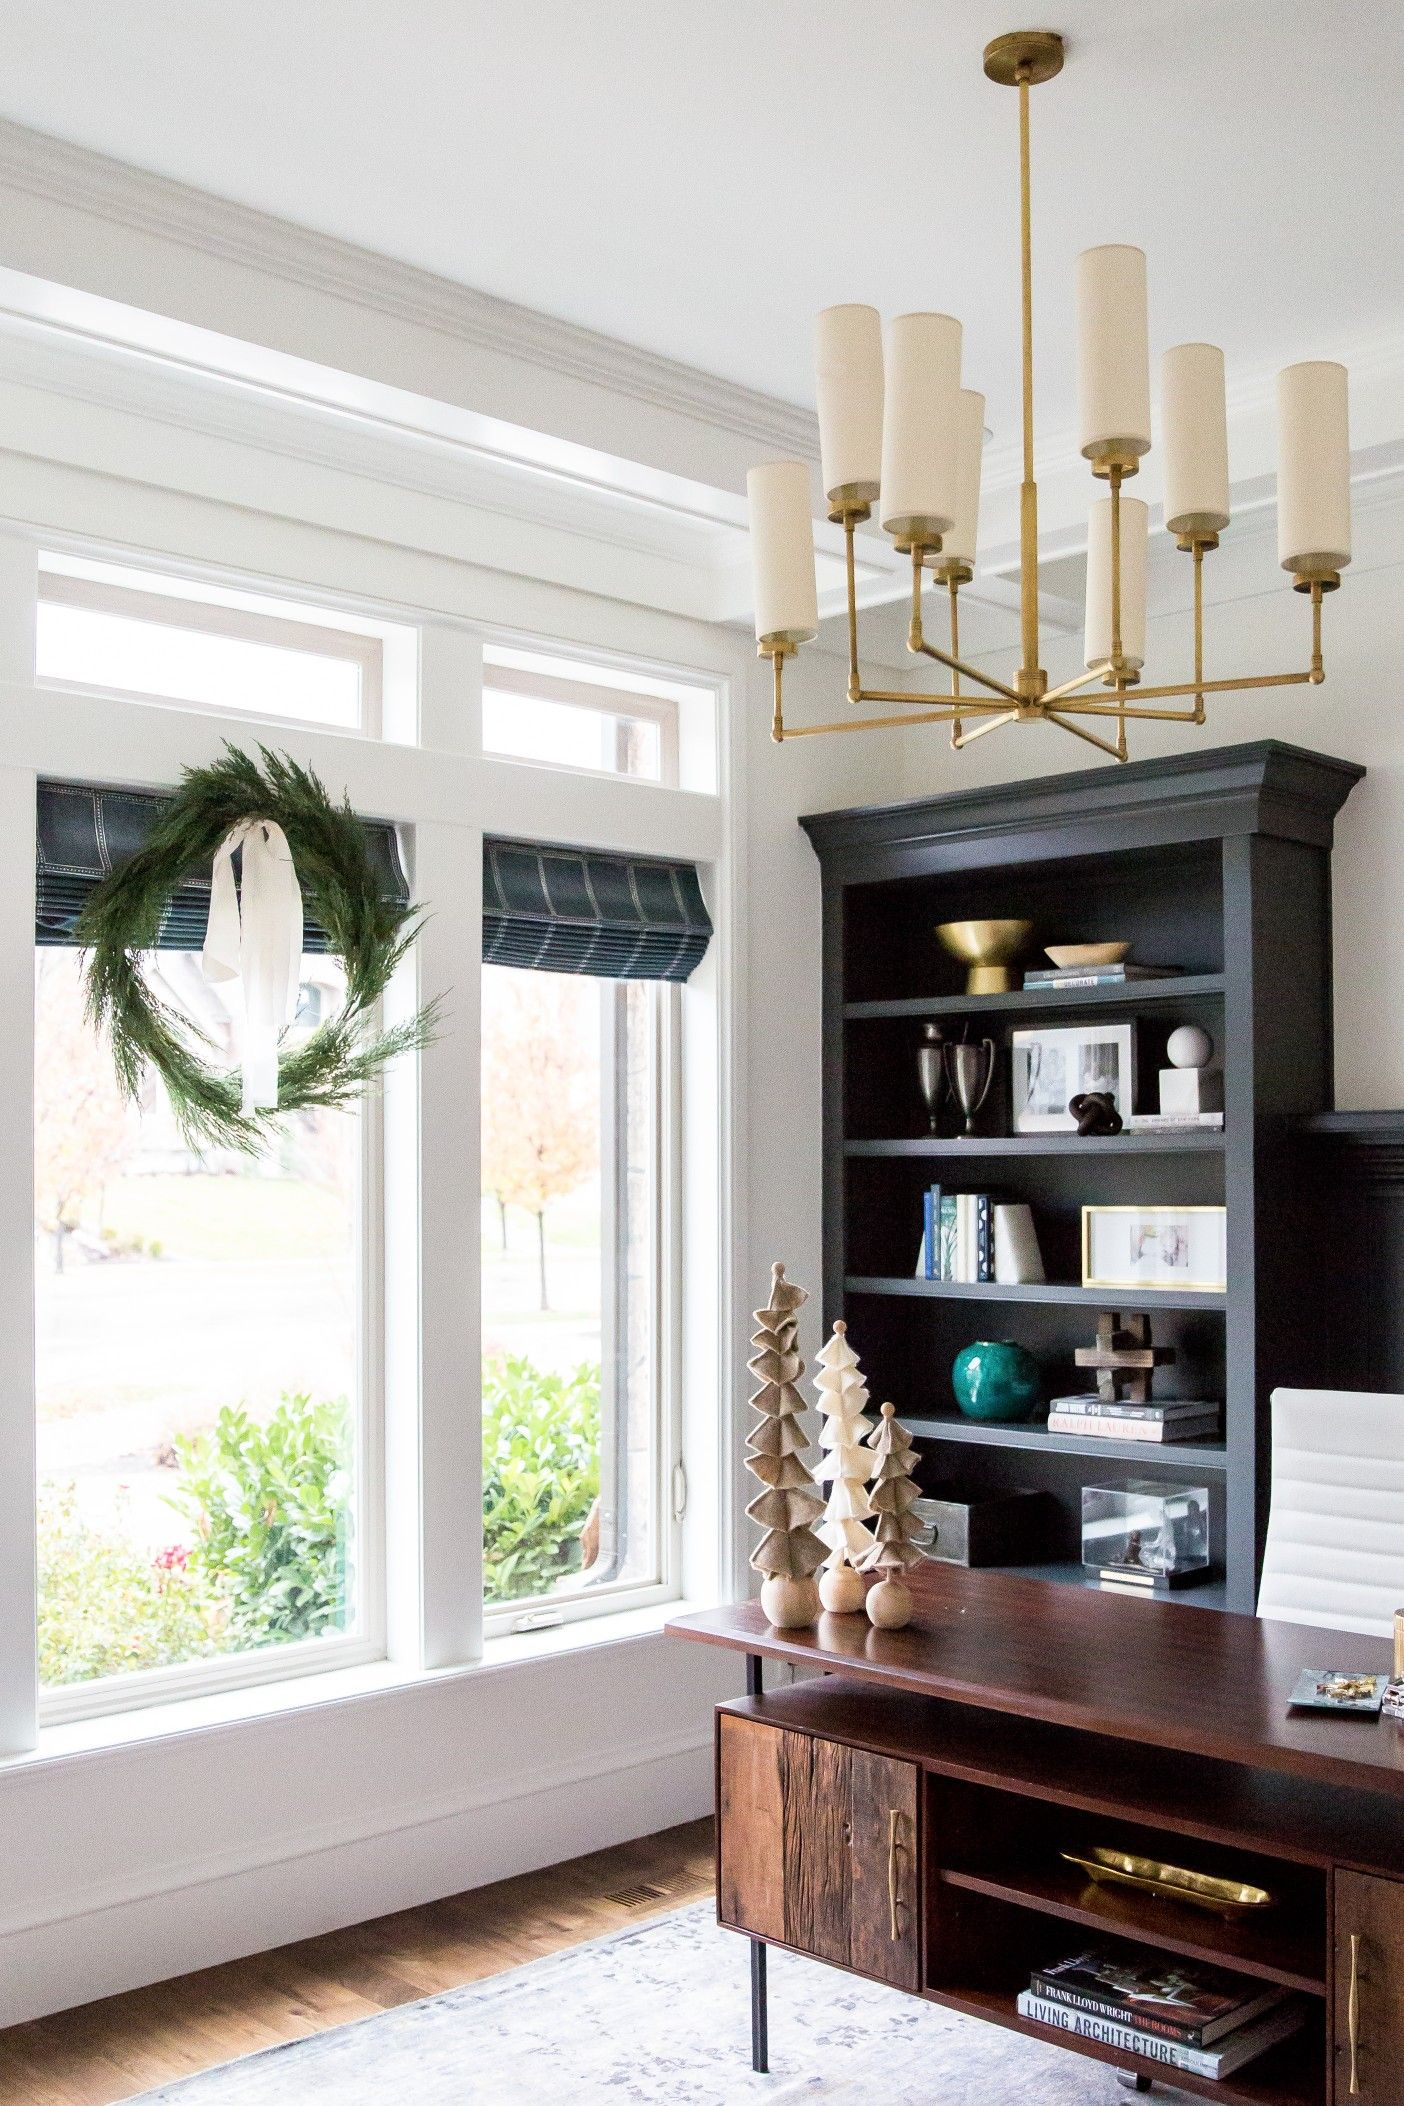 Christmas styling guide home home decor home decor kitchen